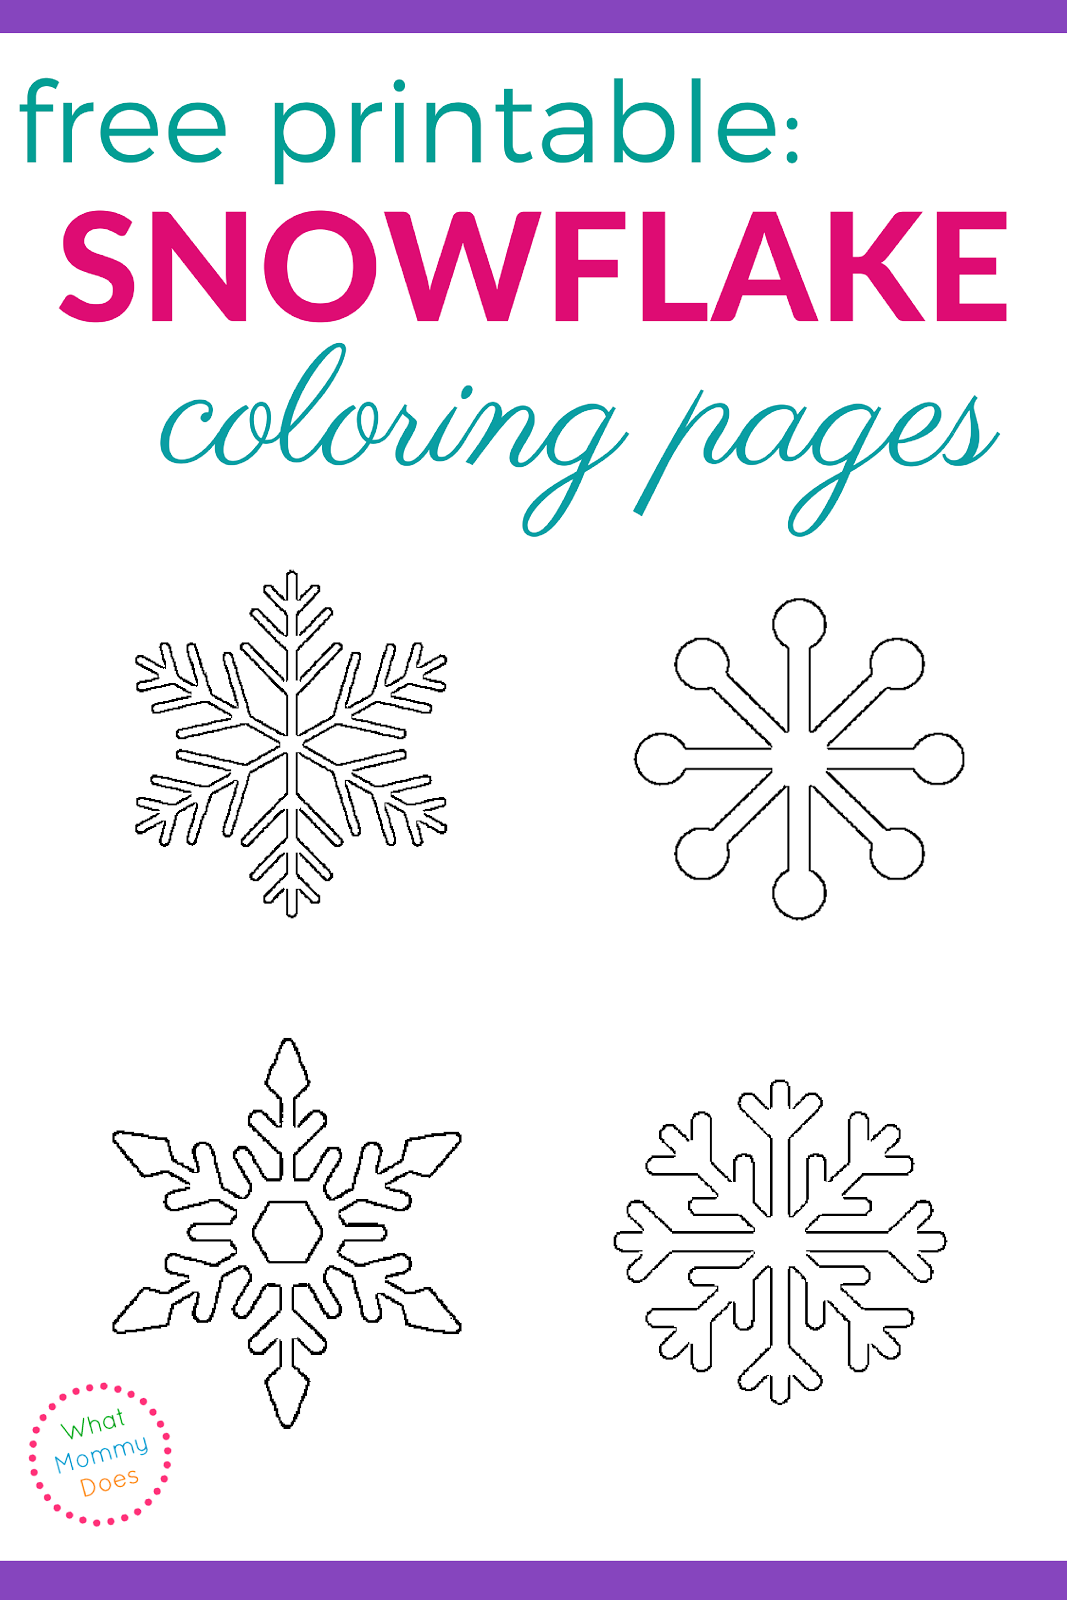 It's just an image of Crush Snow Flake Print Outs